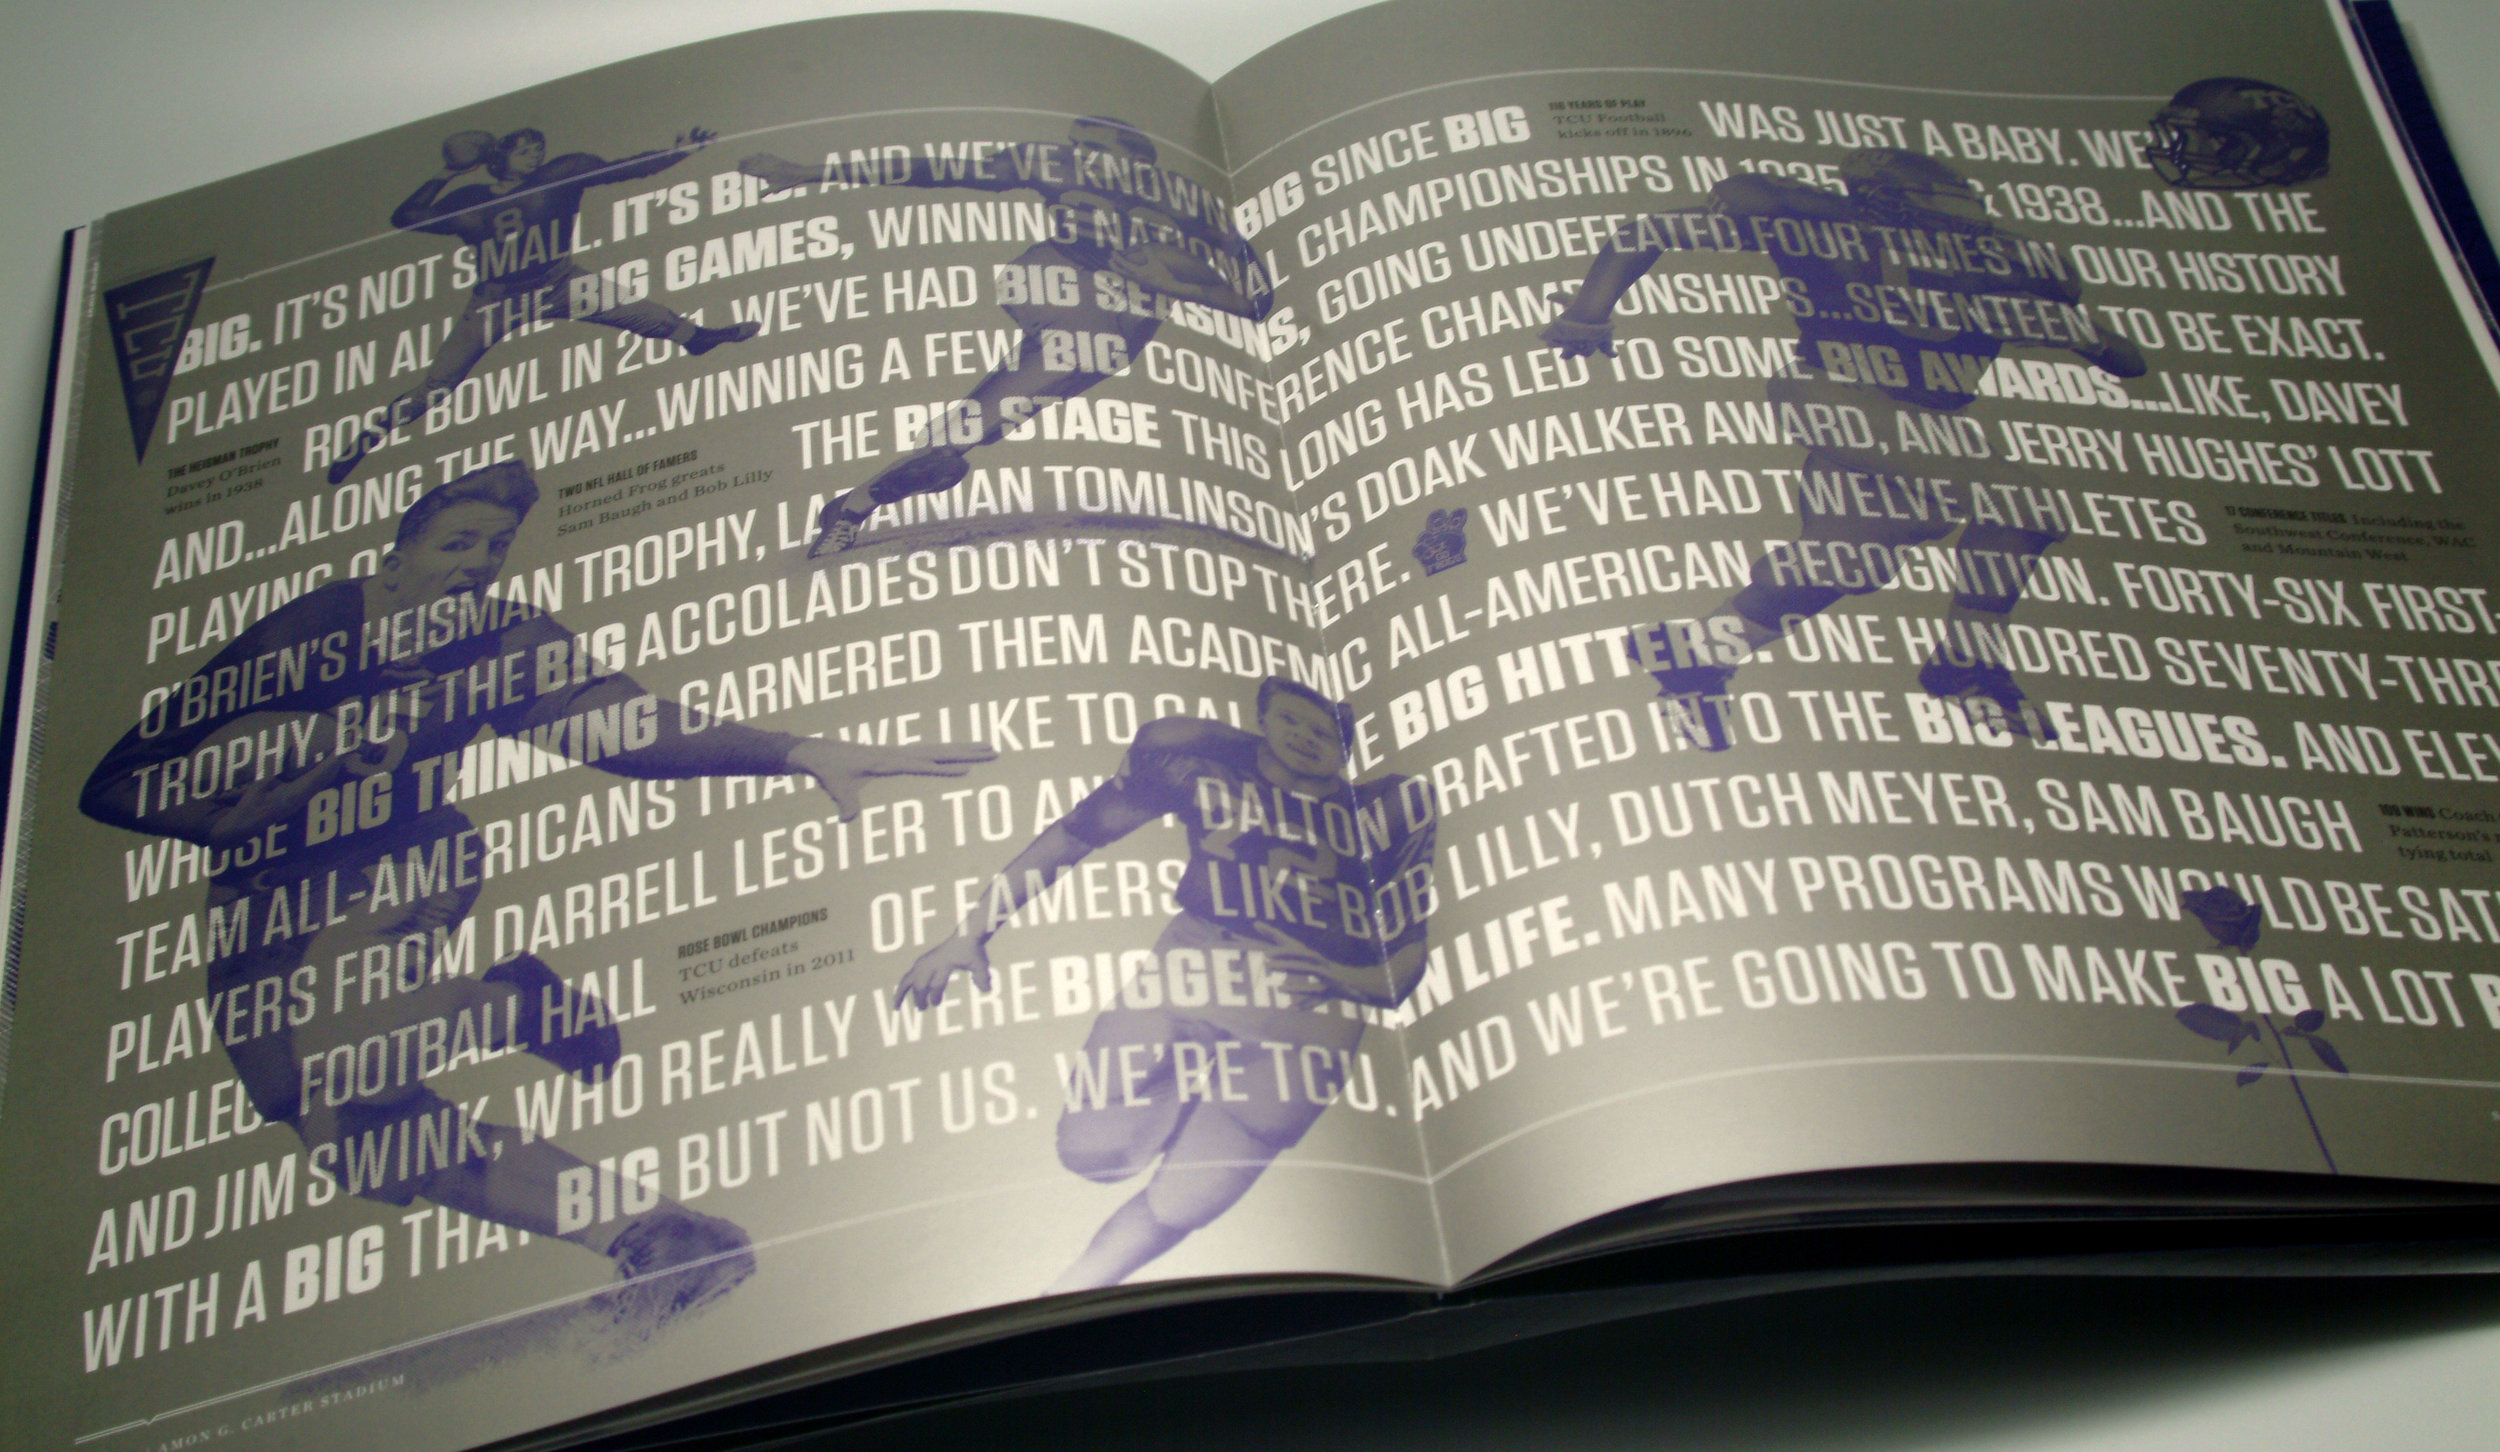 tcu football season ticket brochure metallic text.jpg